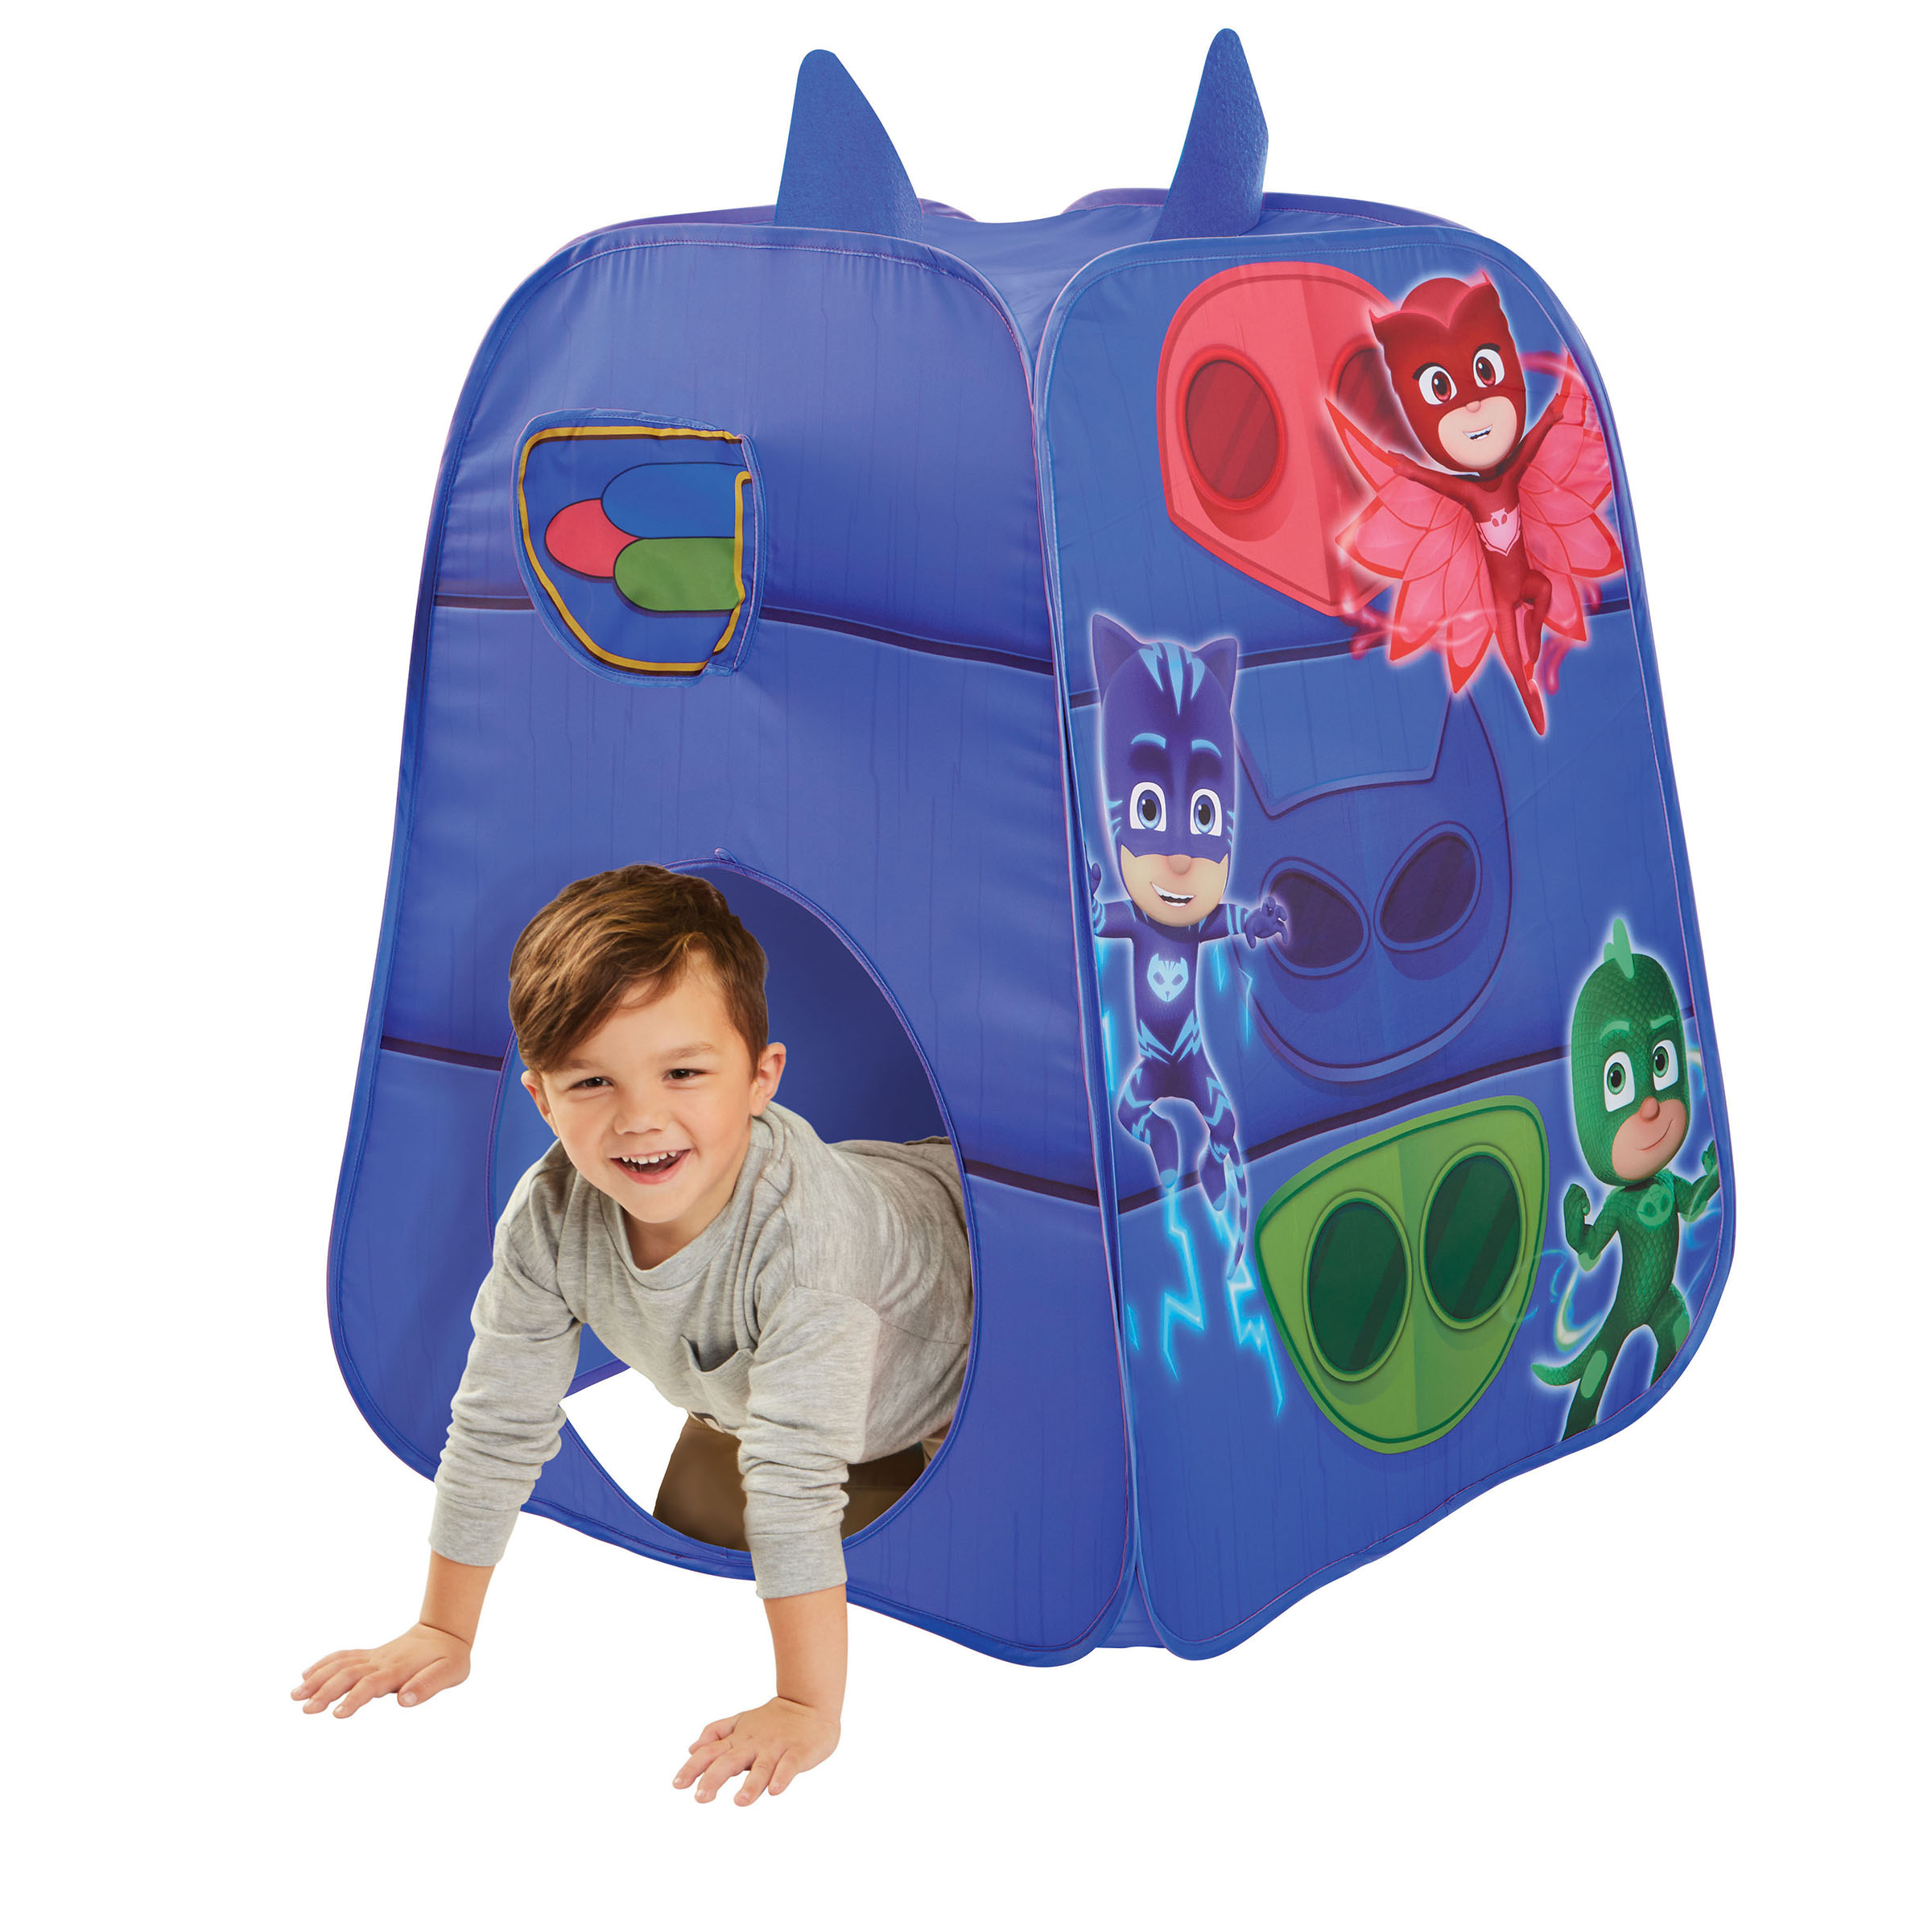 PJ Masks Indoor/Outdoor Play Tent Playhouse for Kids Boys/Girls with Easy Pop Up Set, Ages 3+ (Walmart)